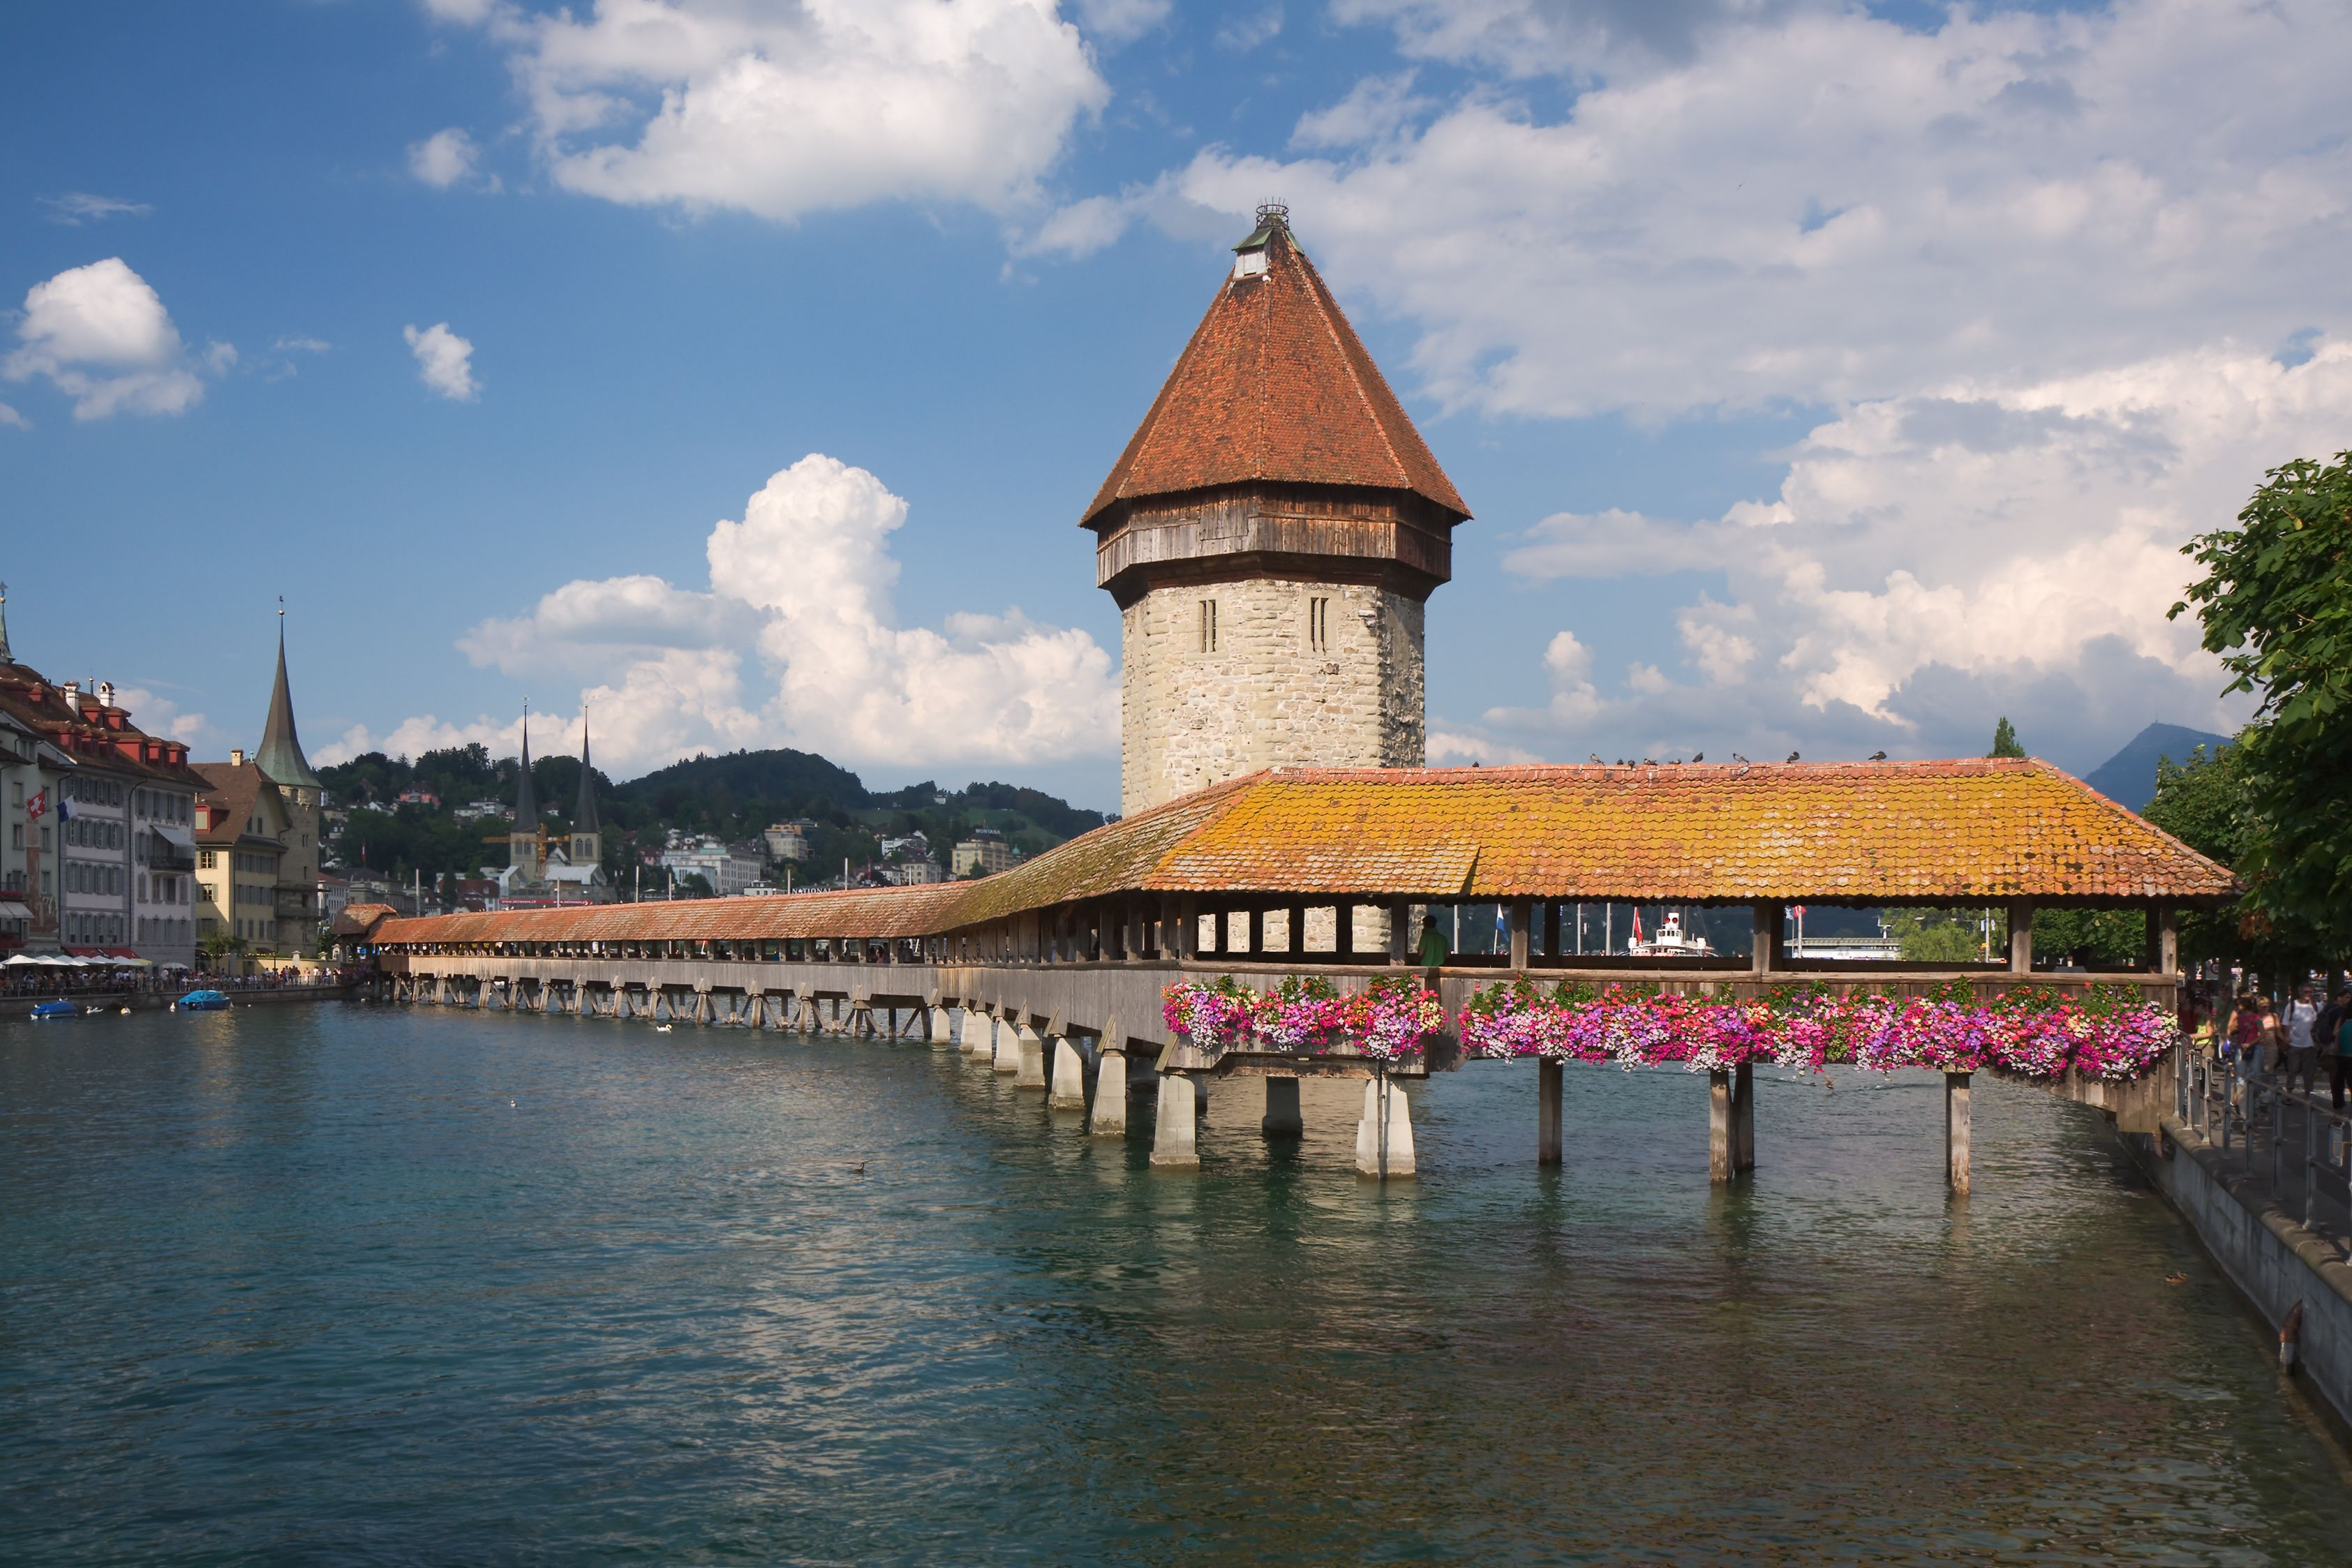 The Chapel Bridge (German: Kapellbrücke) Is A Covered Wooden Footbridge  Spanning Diagonally Across The Reuss River In The City Of Lucerne In  Central ...